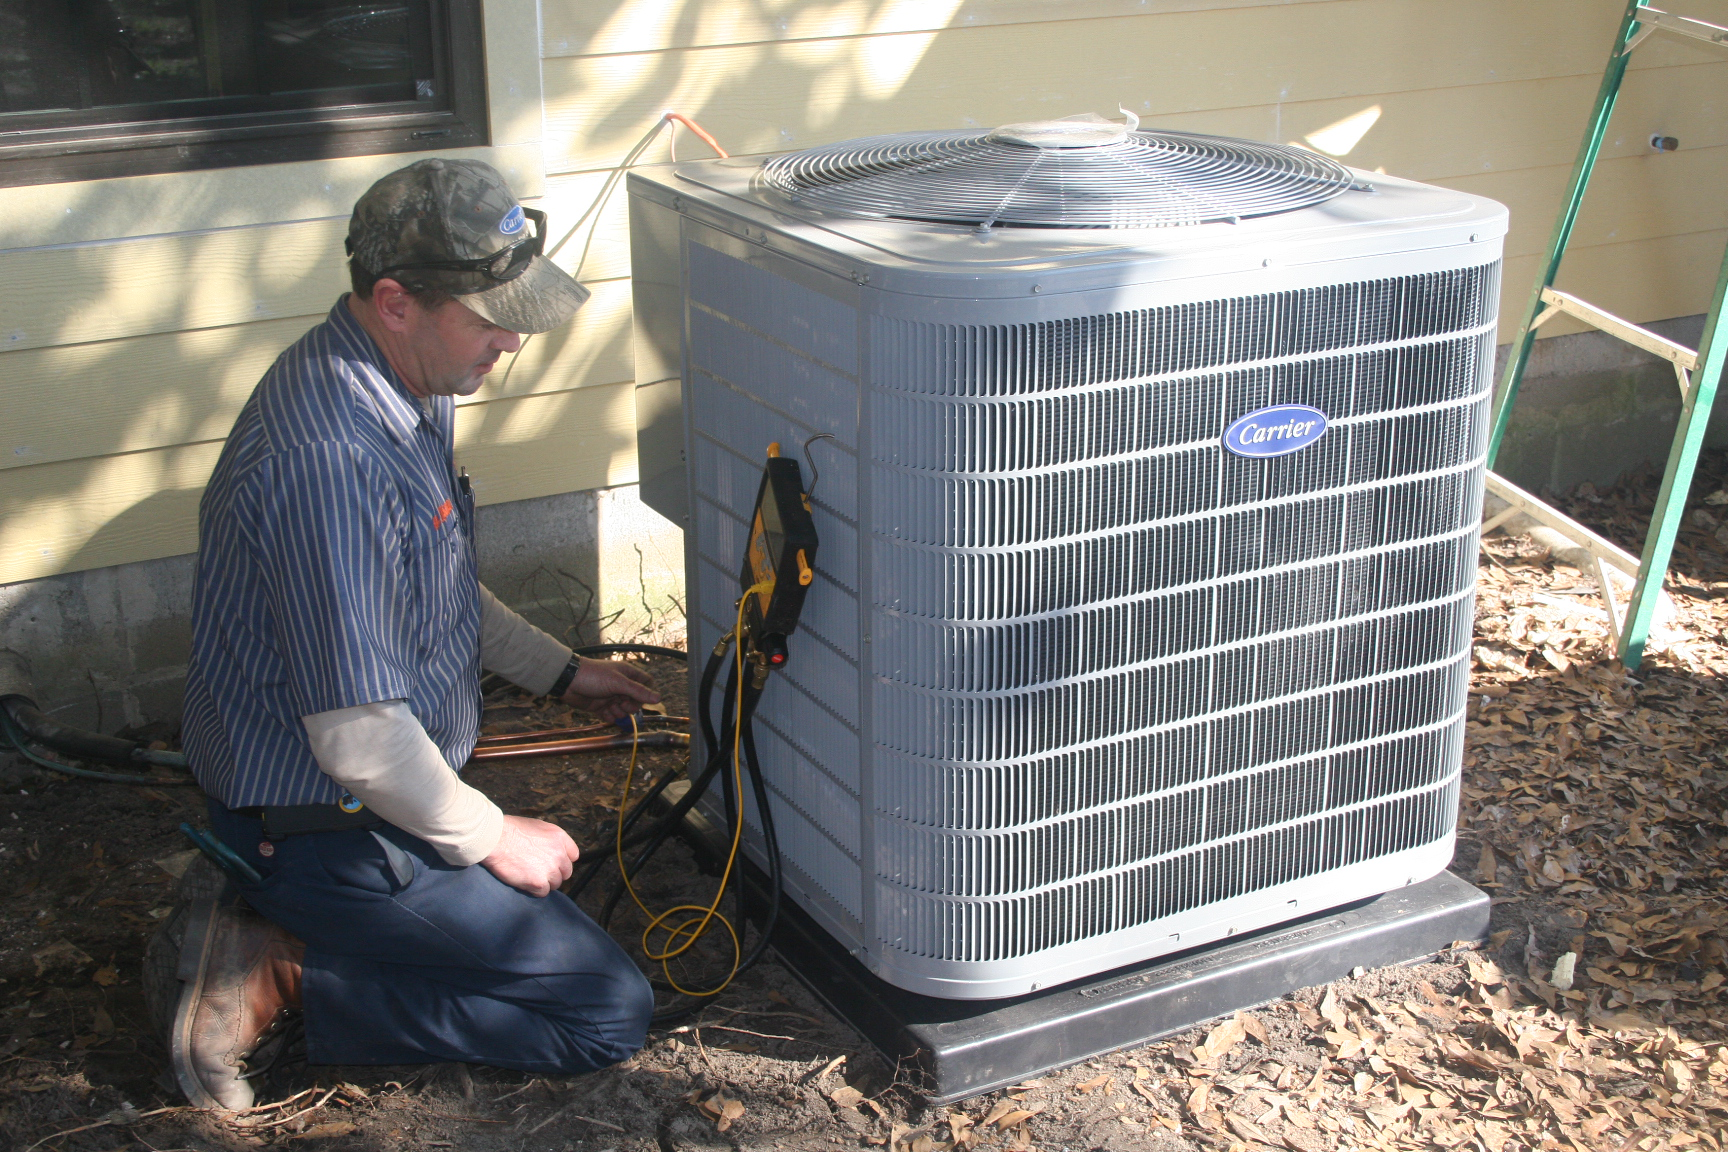 Carrier Heat Pump, Outdoor Unit<br>Installing outdoor unit of new 16 SEER, two stage Carrier heat pump</br>